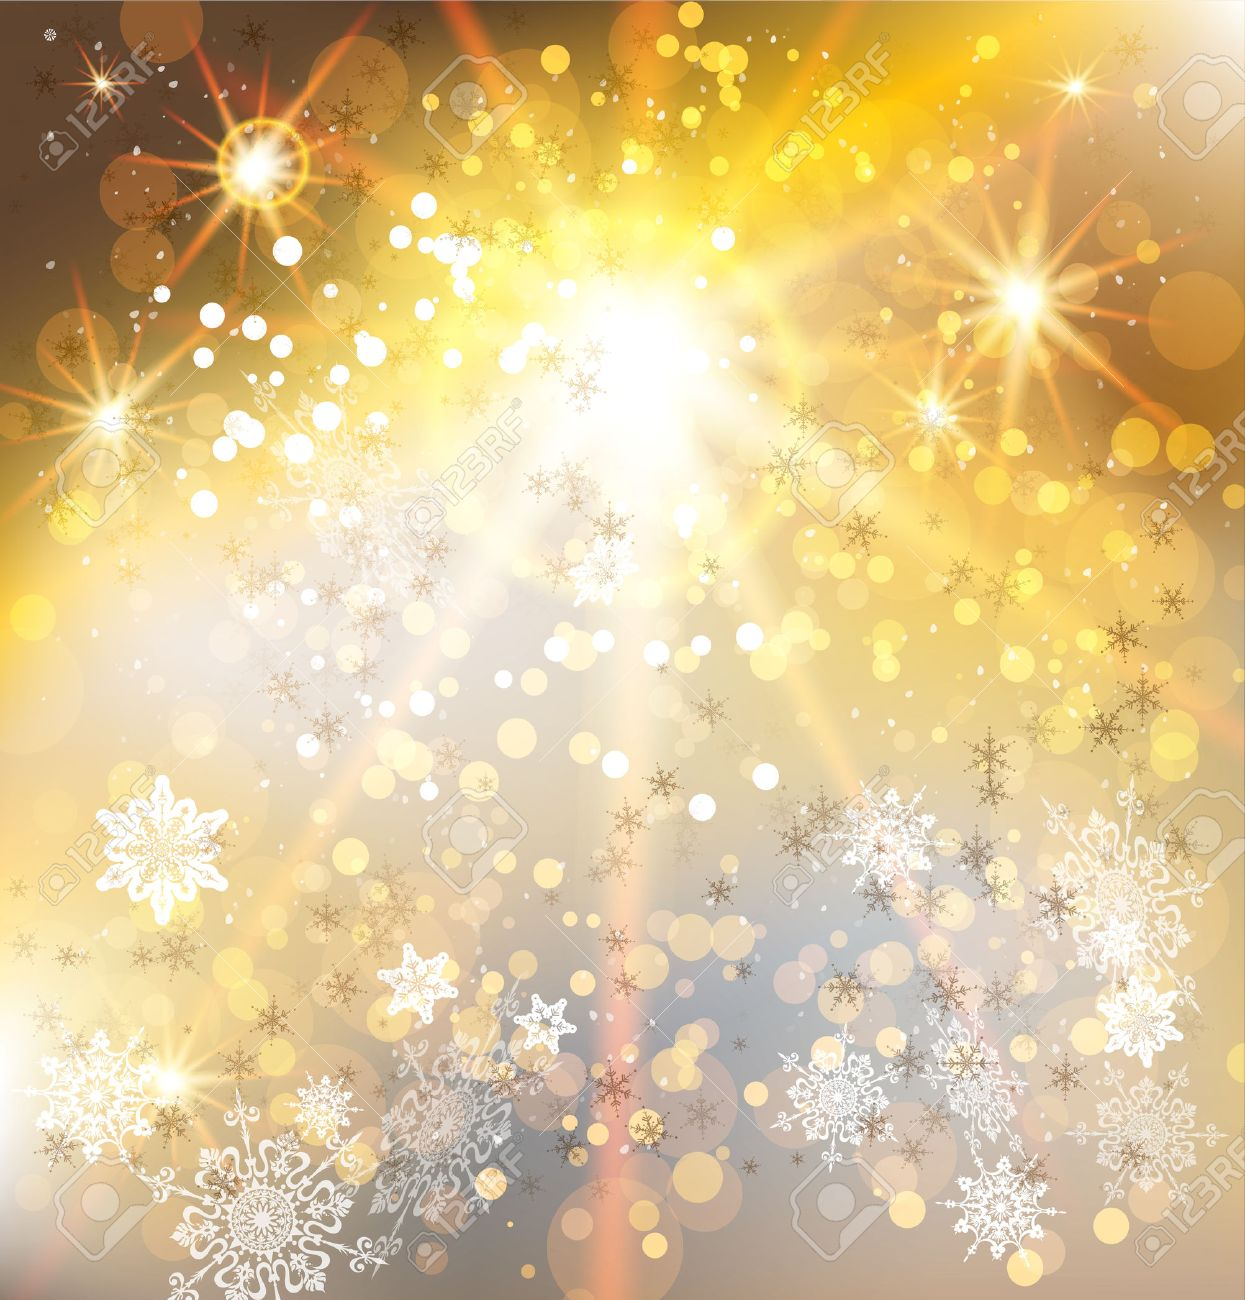 Winter holiday background with gold light. Christmas vector design. - 33460444